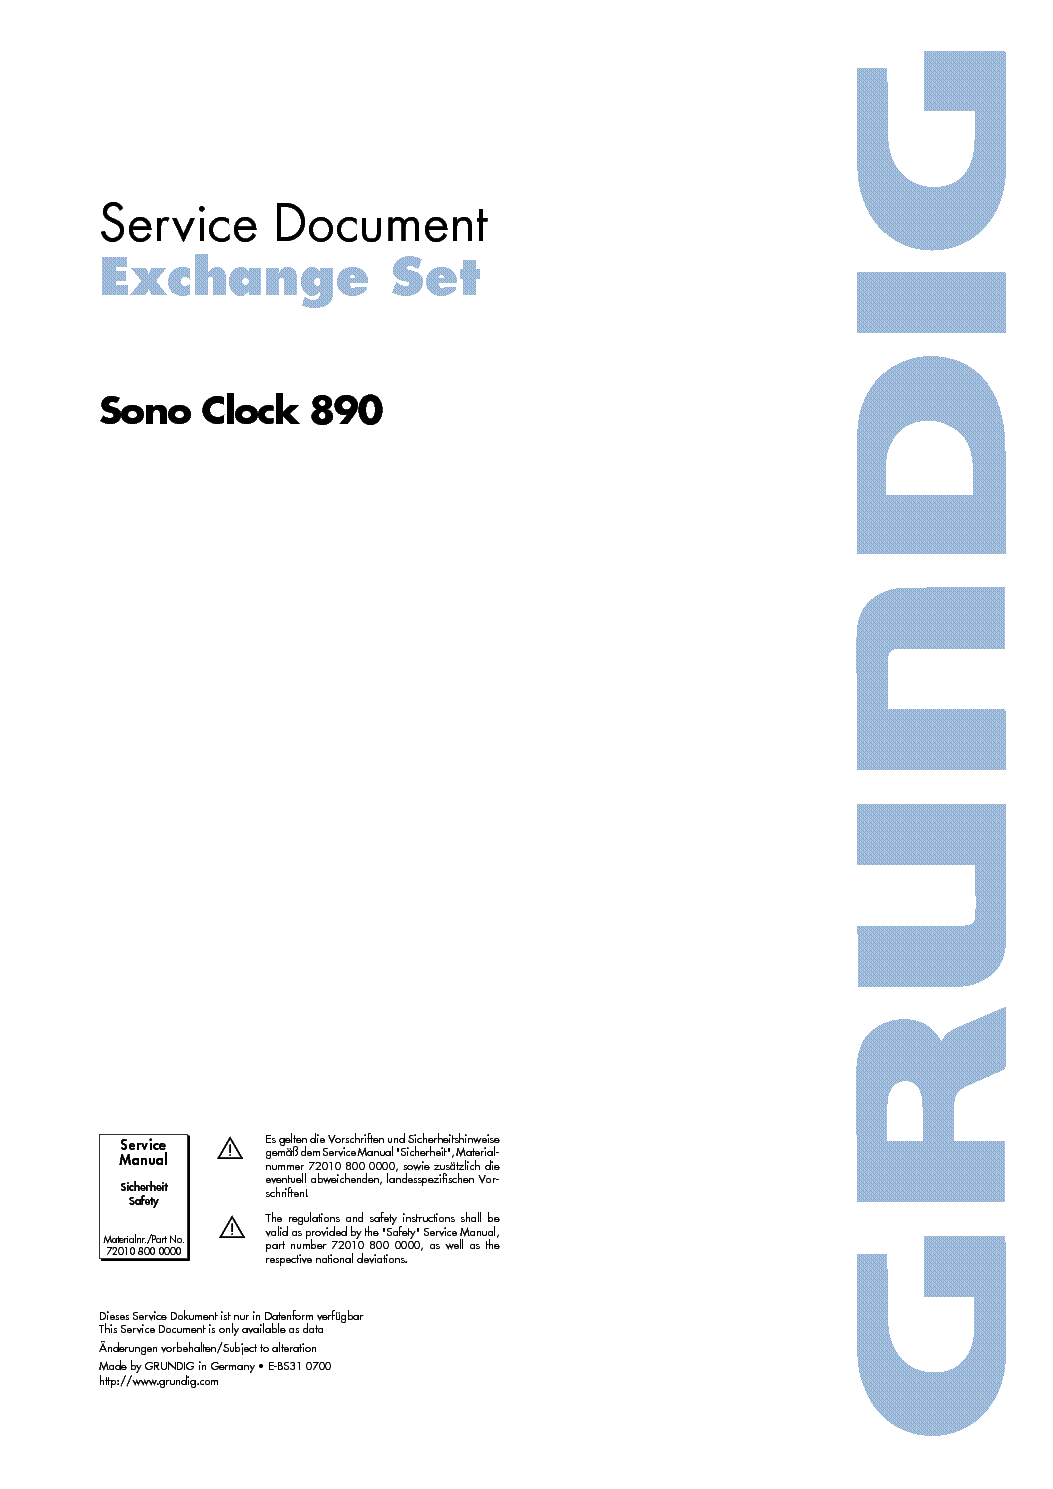 GRUNDIG SONOCLOCK 890 service manual (1st page)